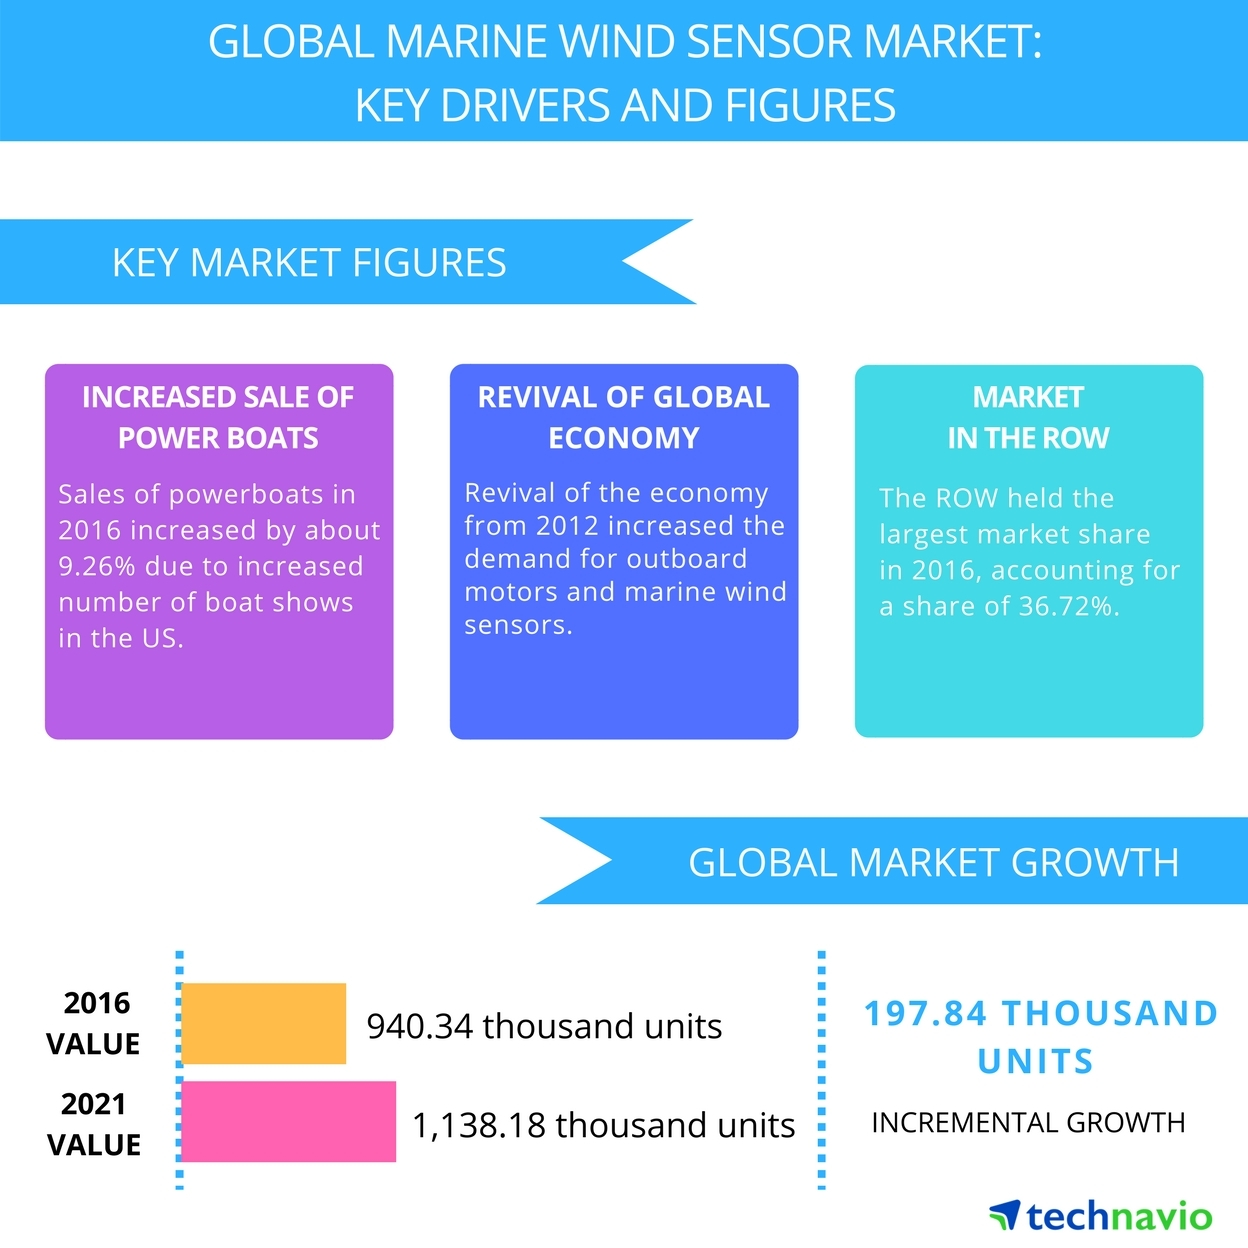 Technavio has published a new report on the global marine wind sensor market from 2017-2021. (Graphic: Business Wire)